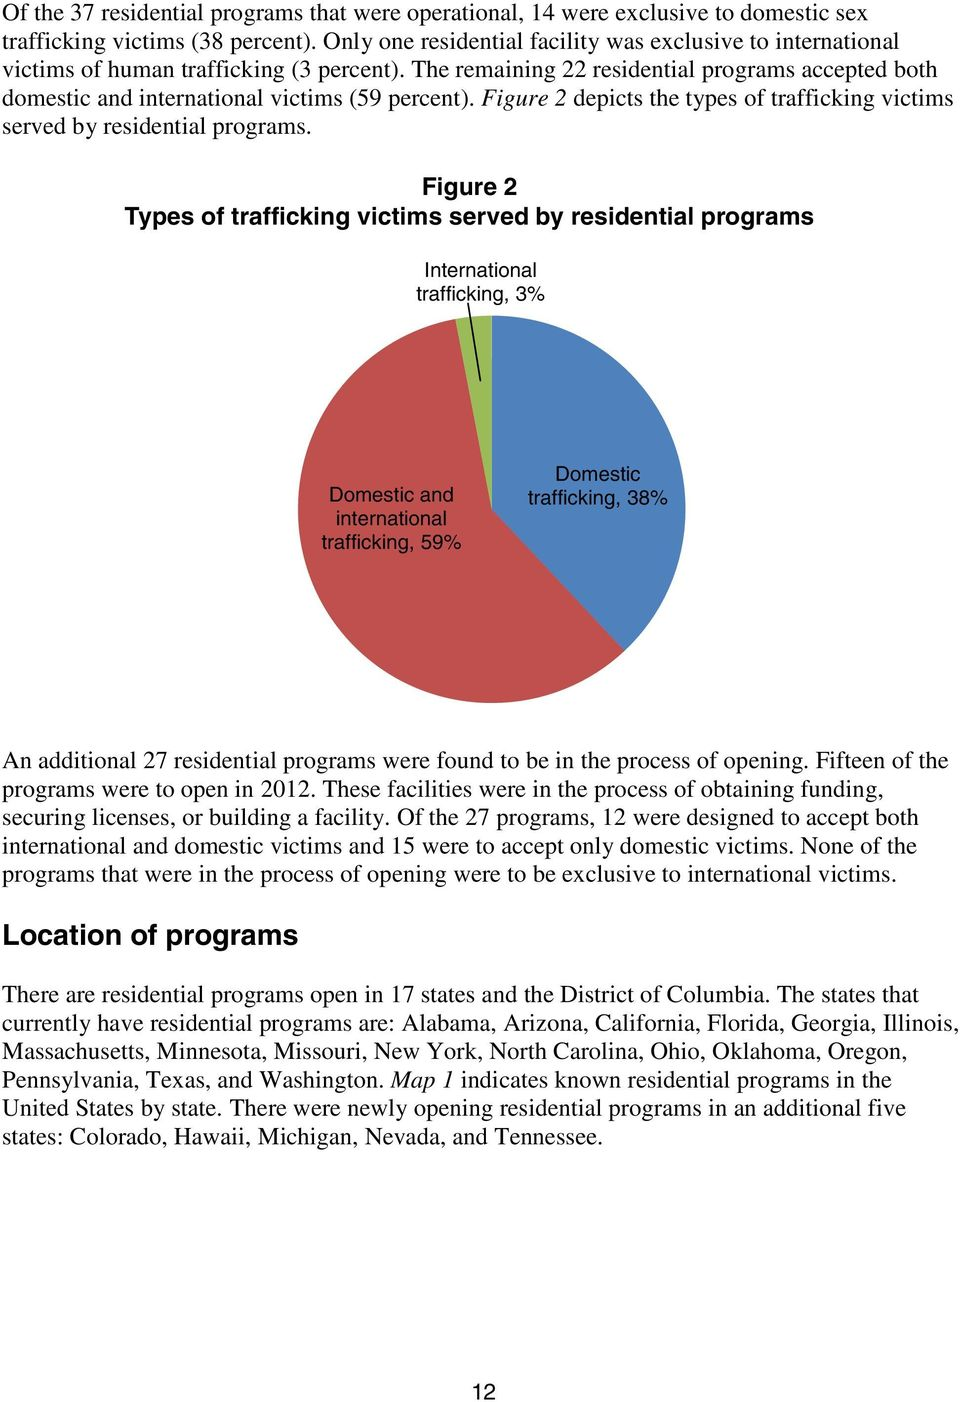 The remaining 22 residential programs accepted both domestic and international victims (59 percent). Figure 2 depicts the types of trafficking victims served by residential programs.